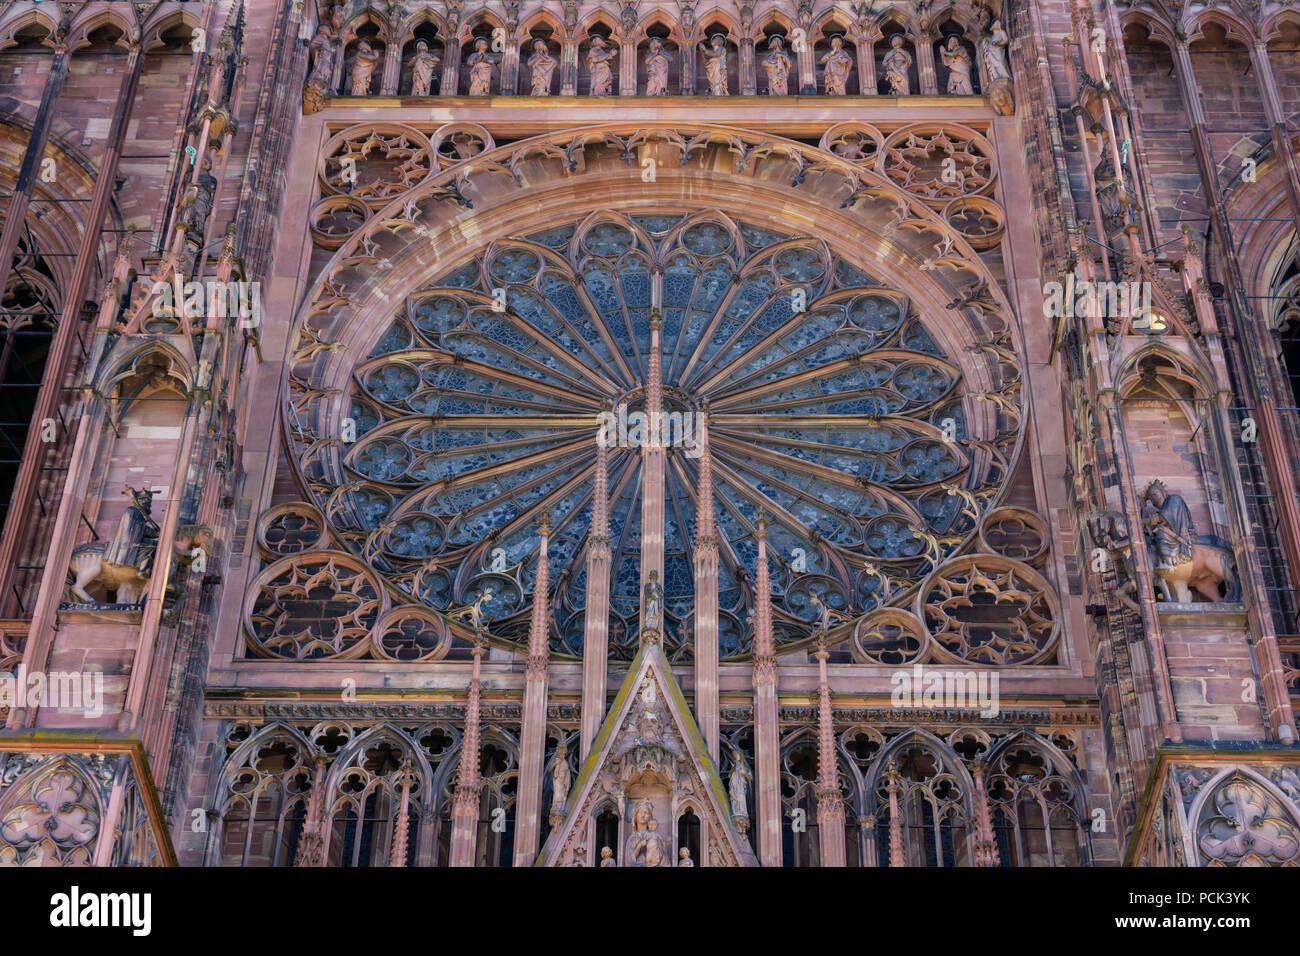 Front Facade Of The Strasbourg Cathedral With Its Rose Window Gothic Architecture